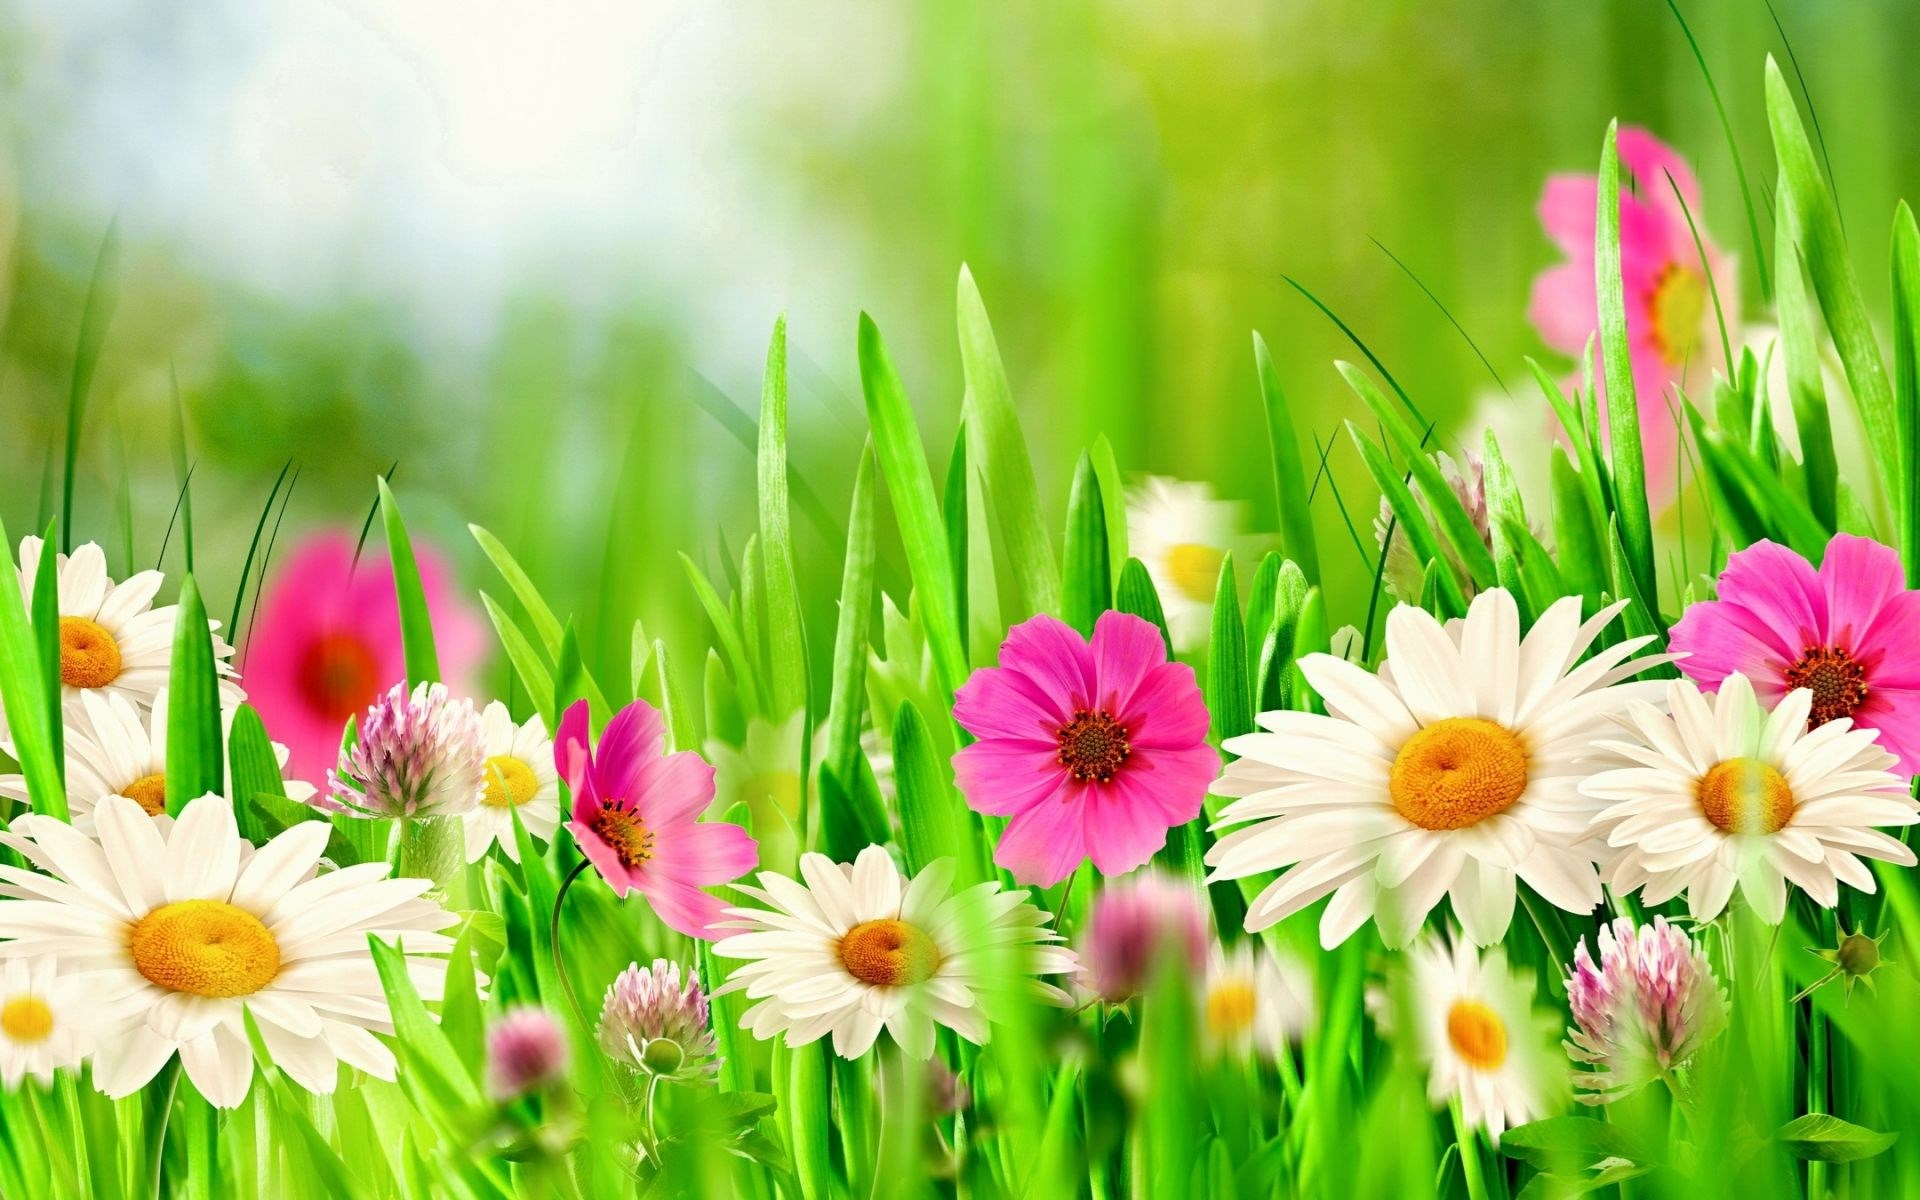 spring-flowers-backgrounds-19.jpg